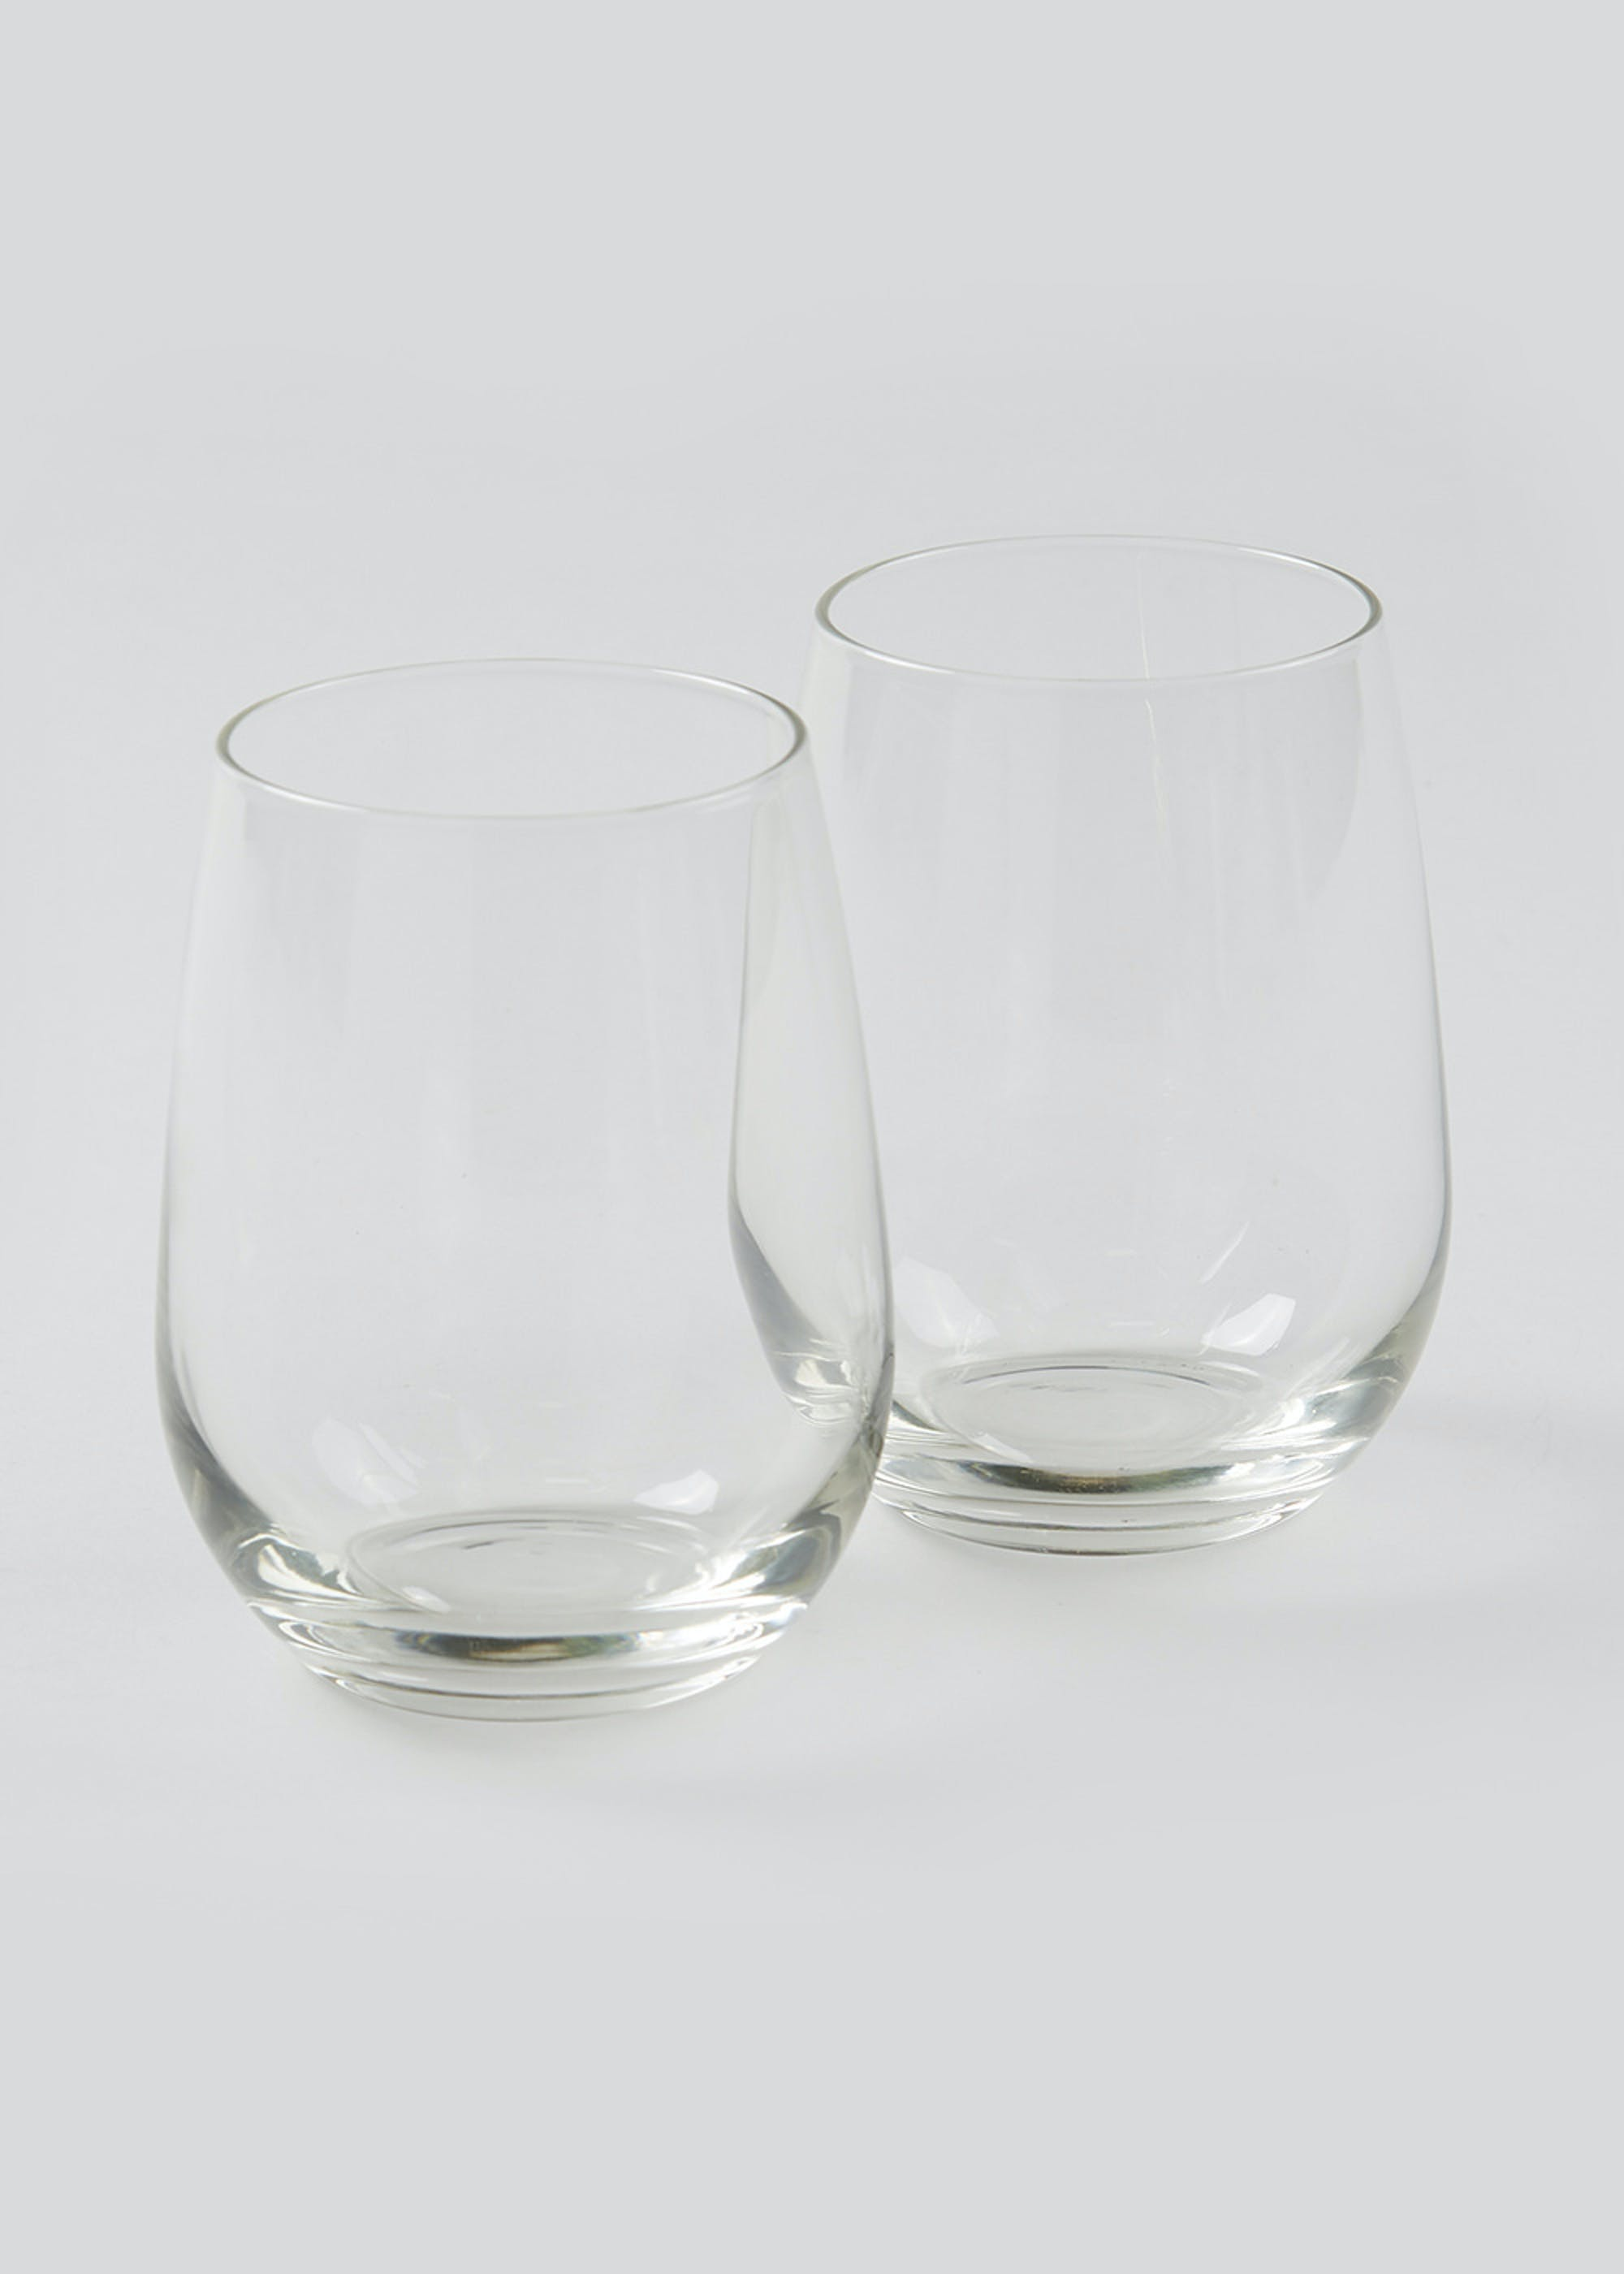 2 Pack Stemless Wine Glasses (11cm x 7cm) Clear IuLrk0